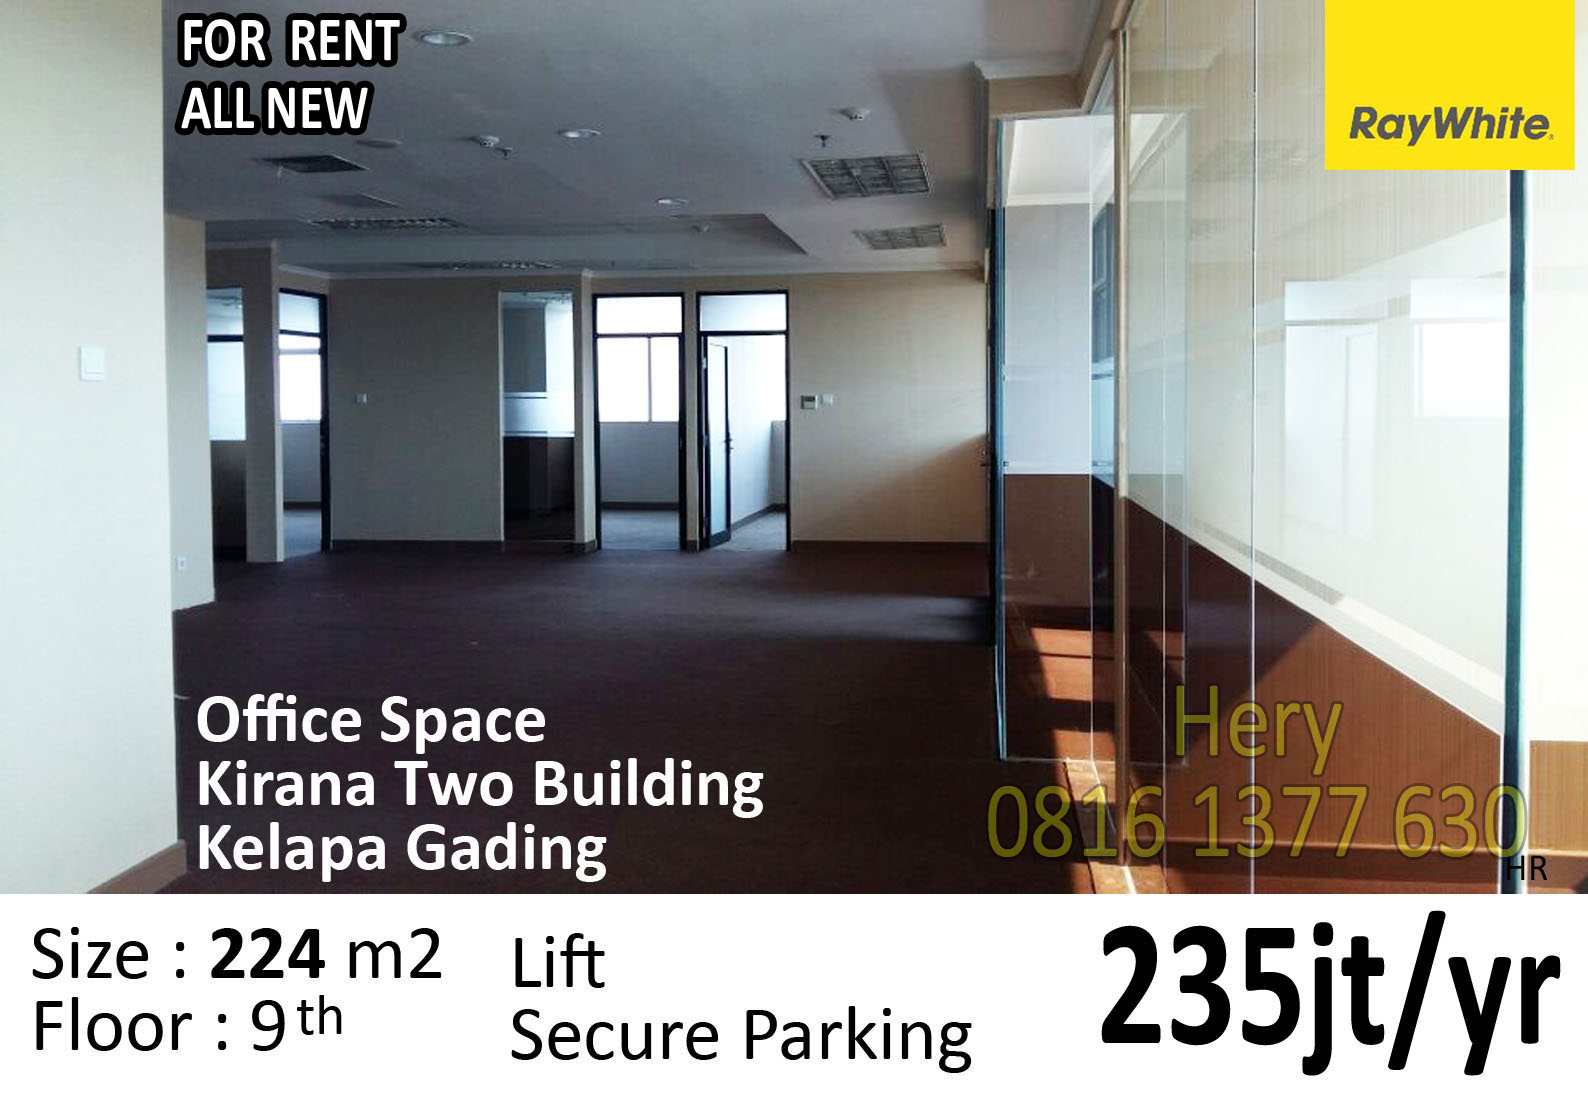 Office Space for Rent Kirana Two Building Kelapa Gading  North Jakarta